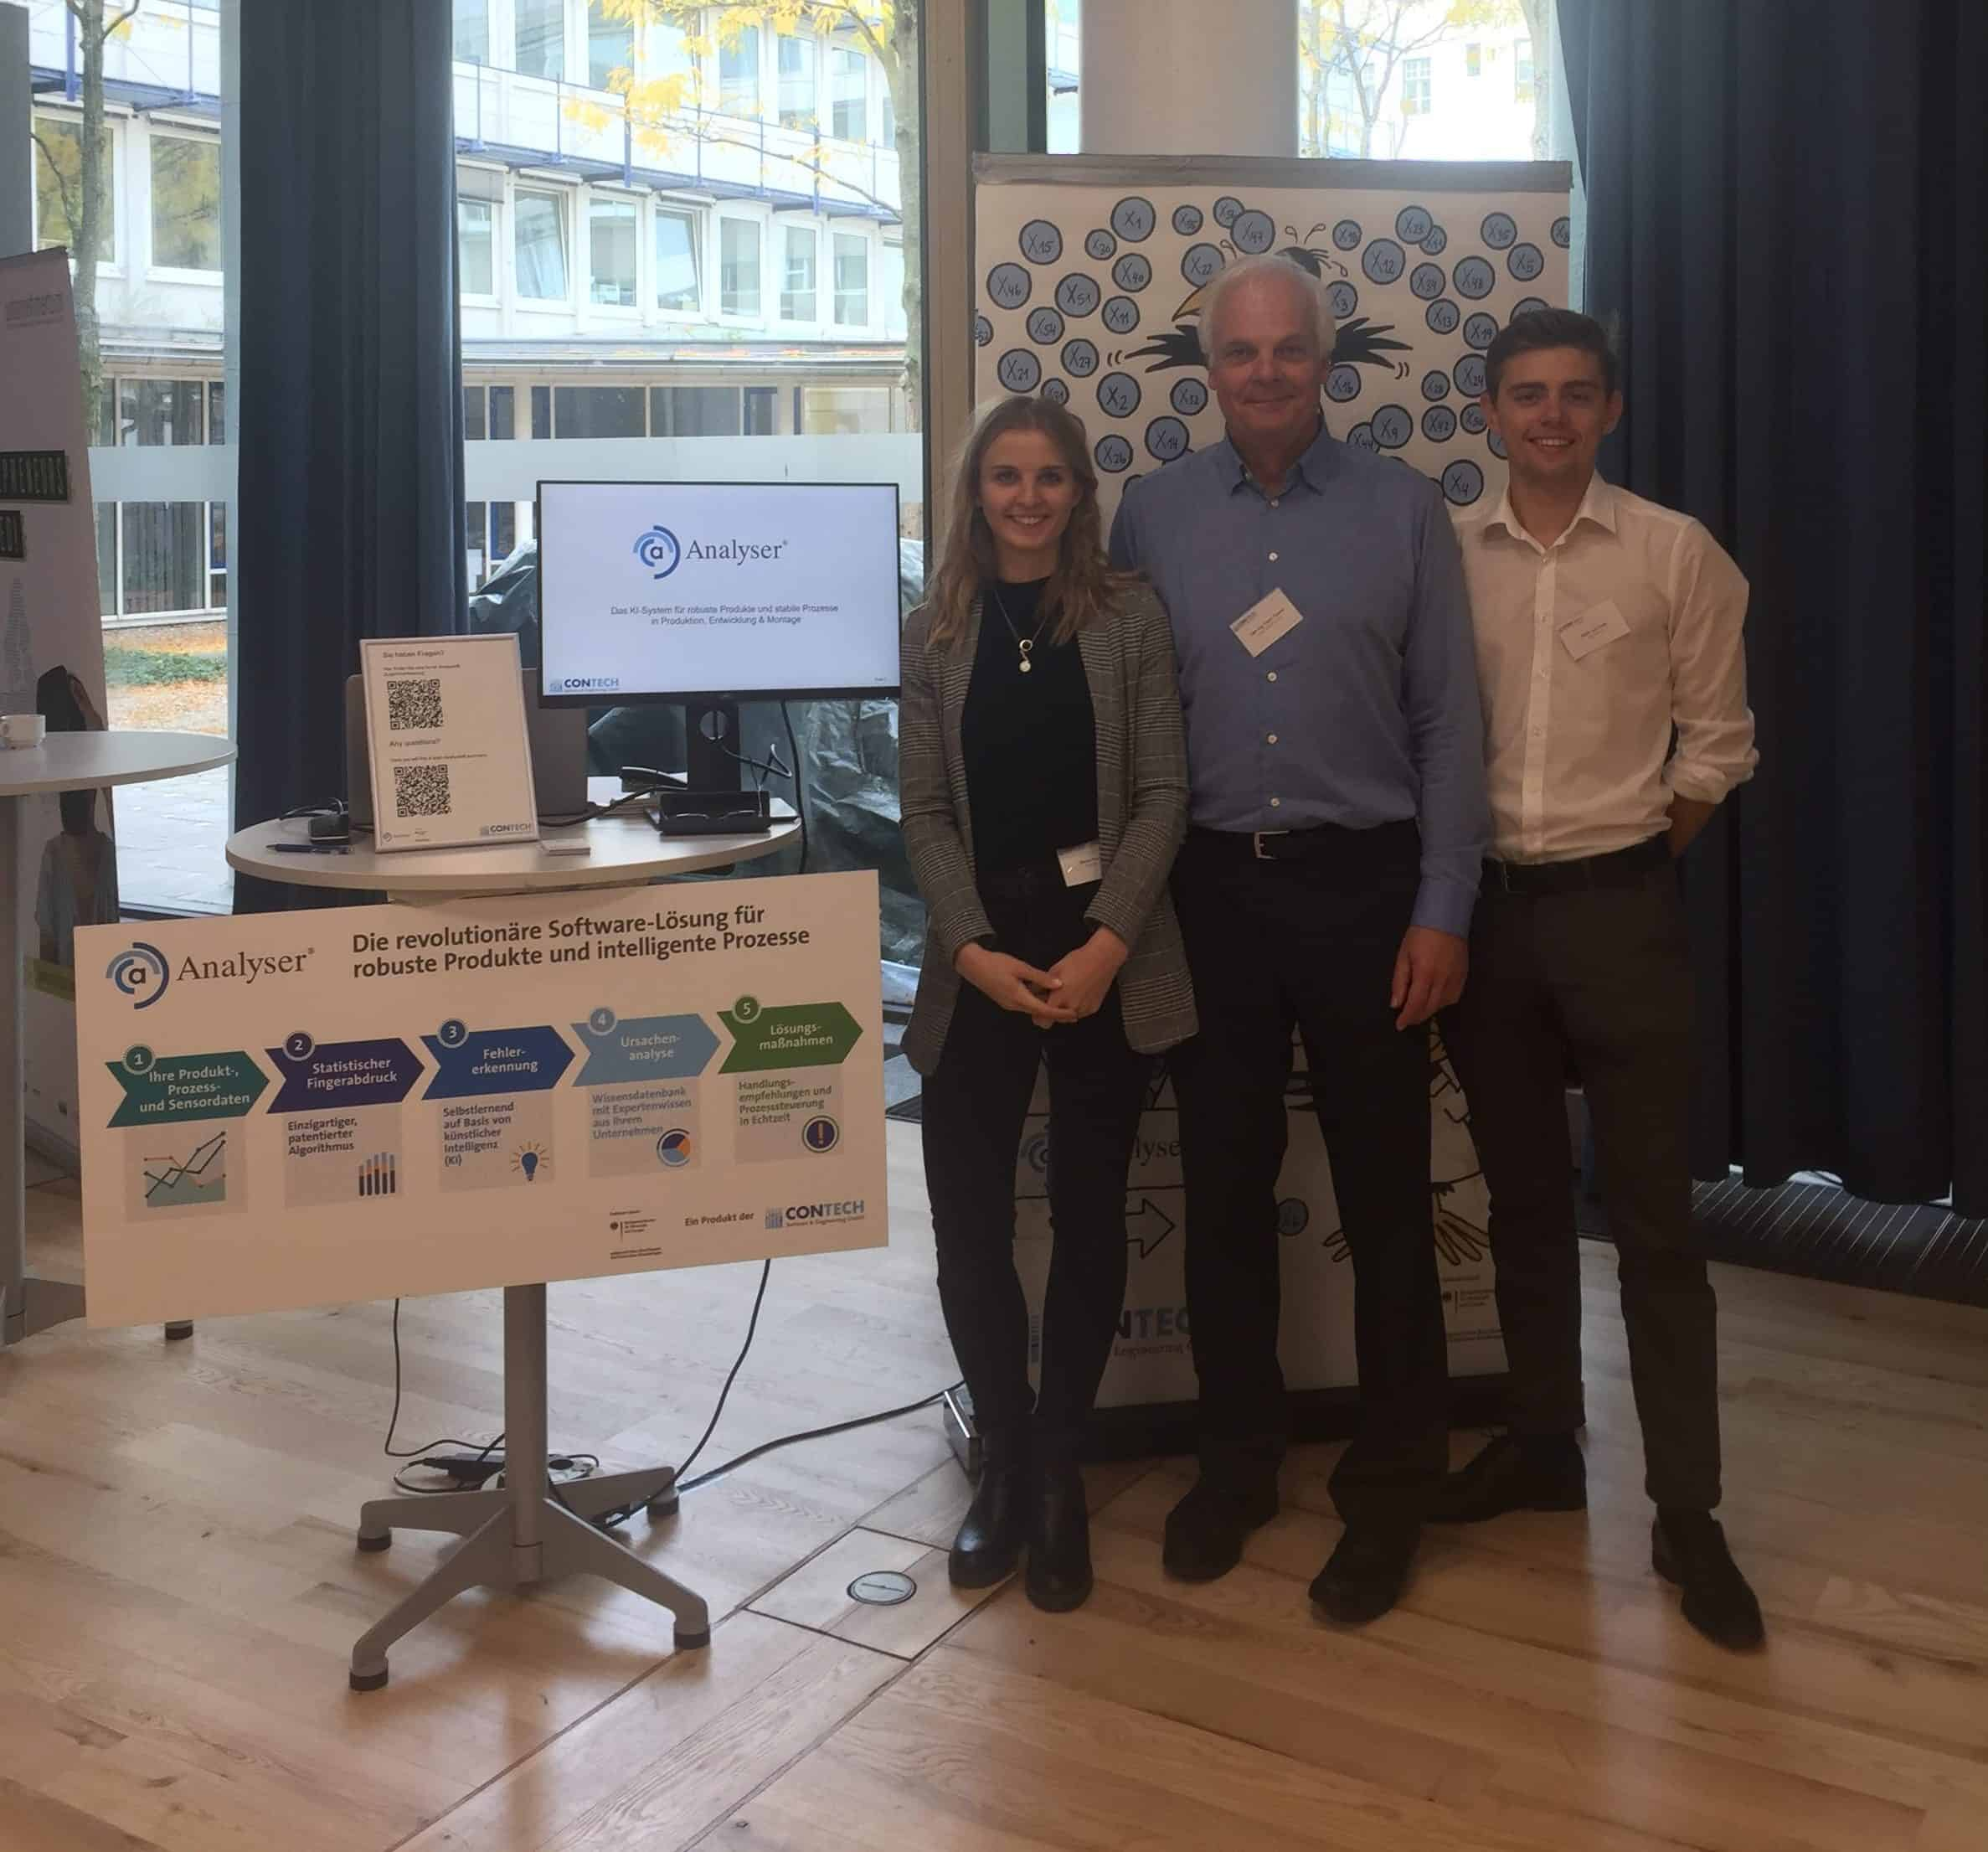 IHK Internet der Dinge Veranstaltung Startup meets Corporates_2019_Contech Software & Engineering GmbH